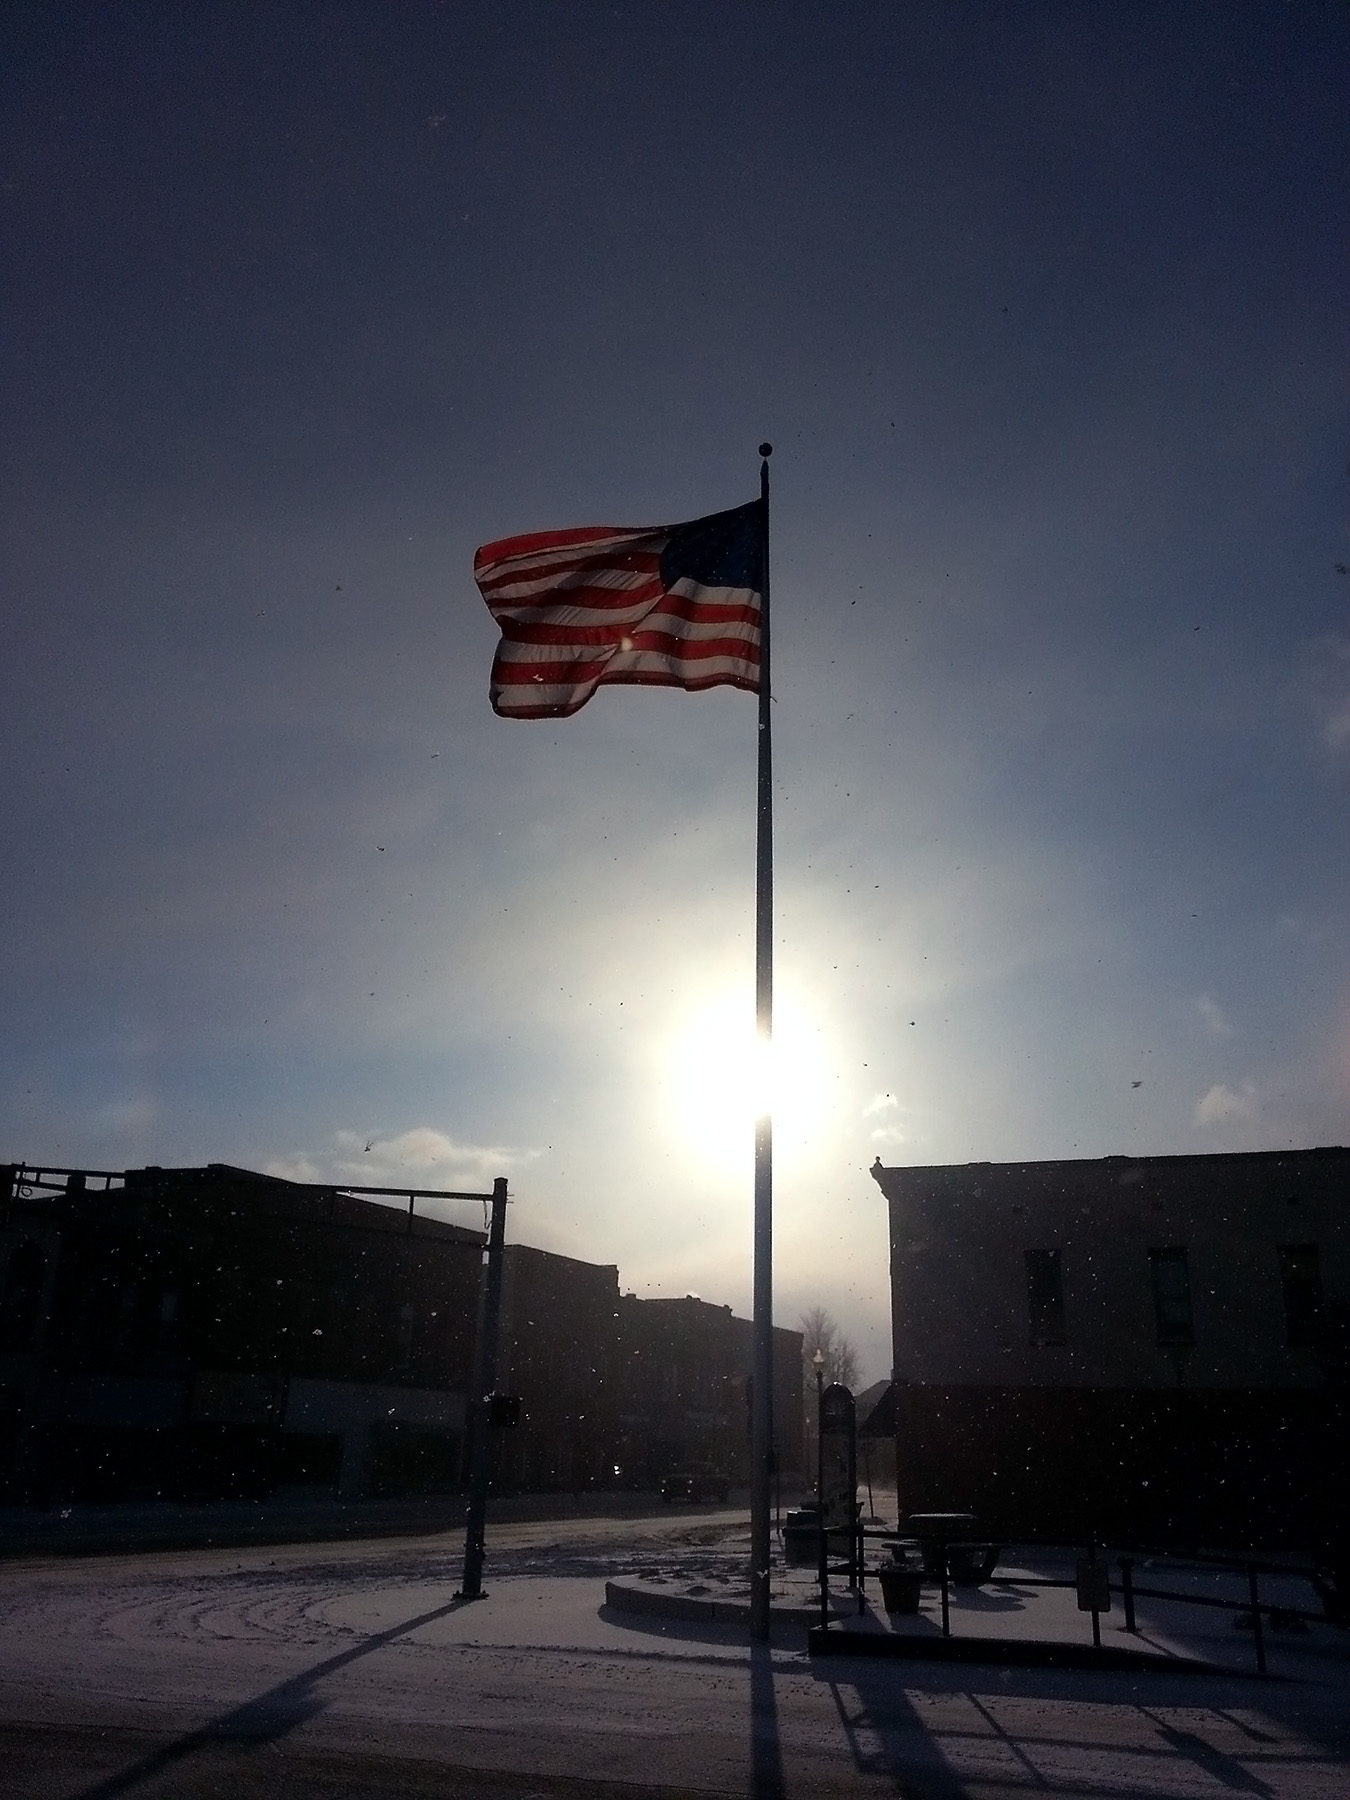 The deep cold of winter creates crisp, clear conditions on Knightstown's Public Square, located just of U.S. 40. A late afternoon sun illuminates snow flurries and Old Glory, whipping angrily in a brisk, southwesterly wind.